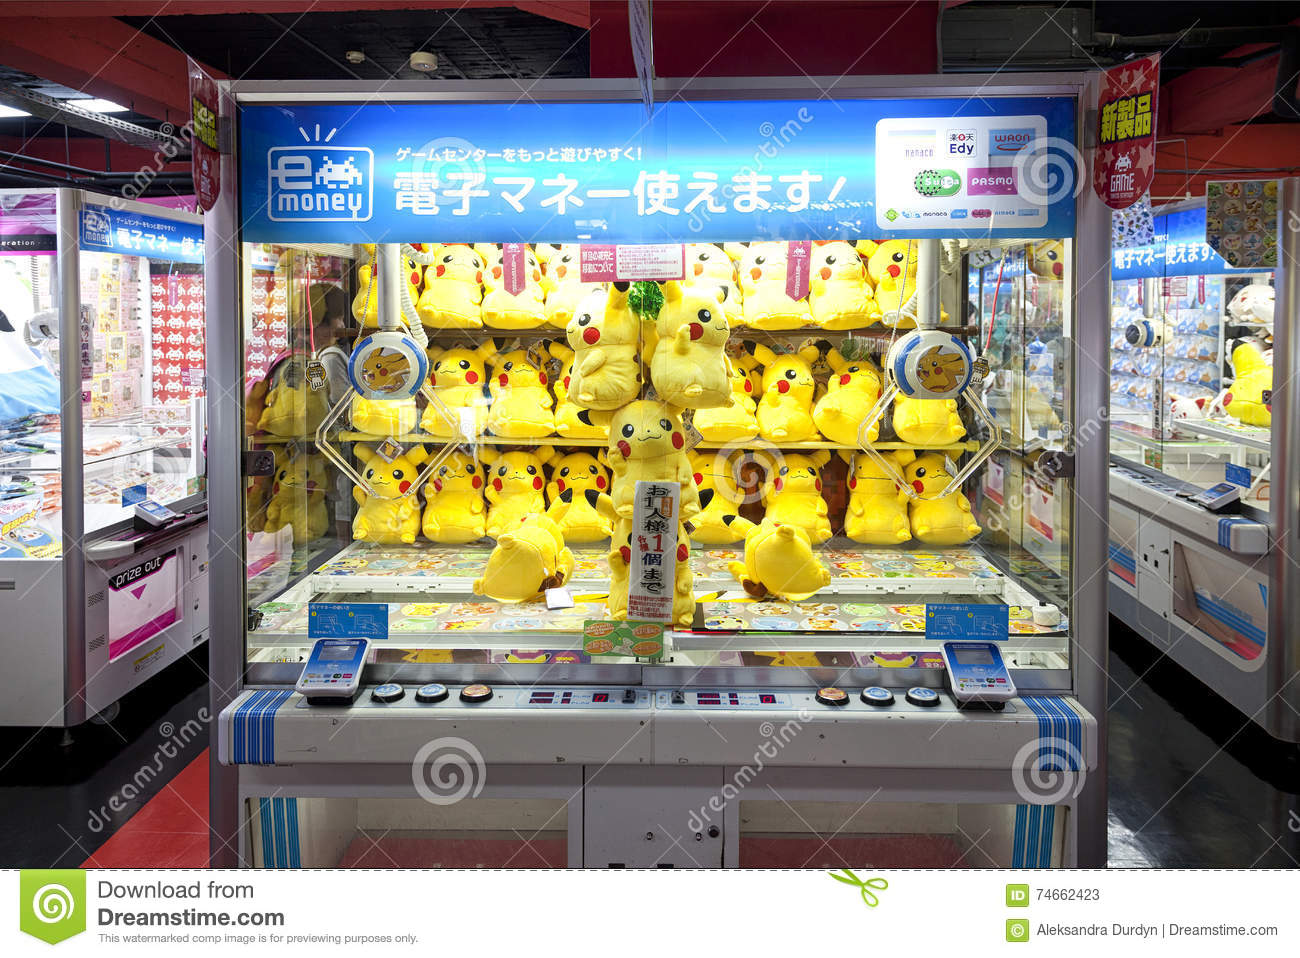 Japanese Toys And Games : Tokyo japan cirka may toy crane game vending